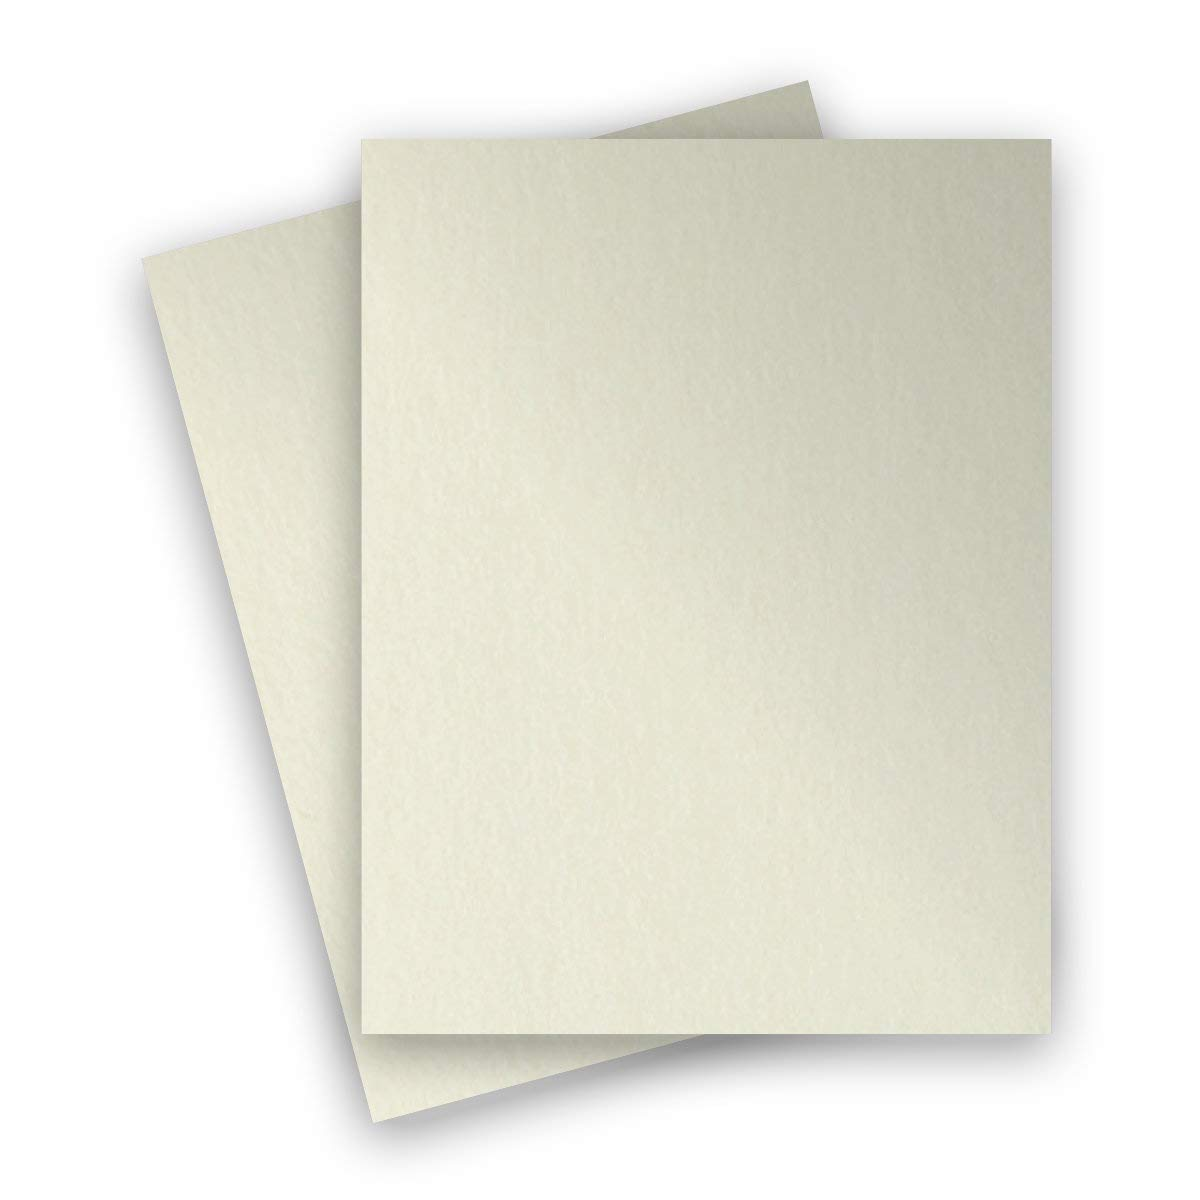 Best Rated in Arts & Crafts Vellum & Helpful Customer